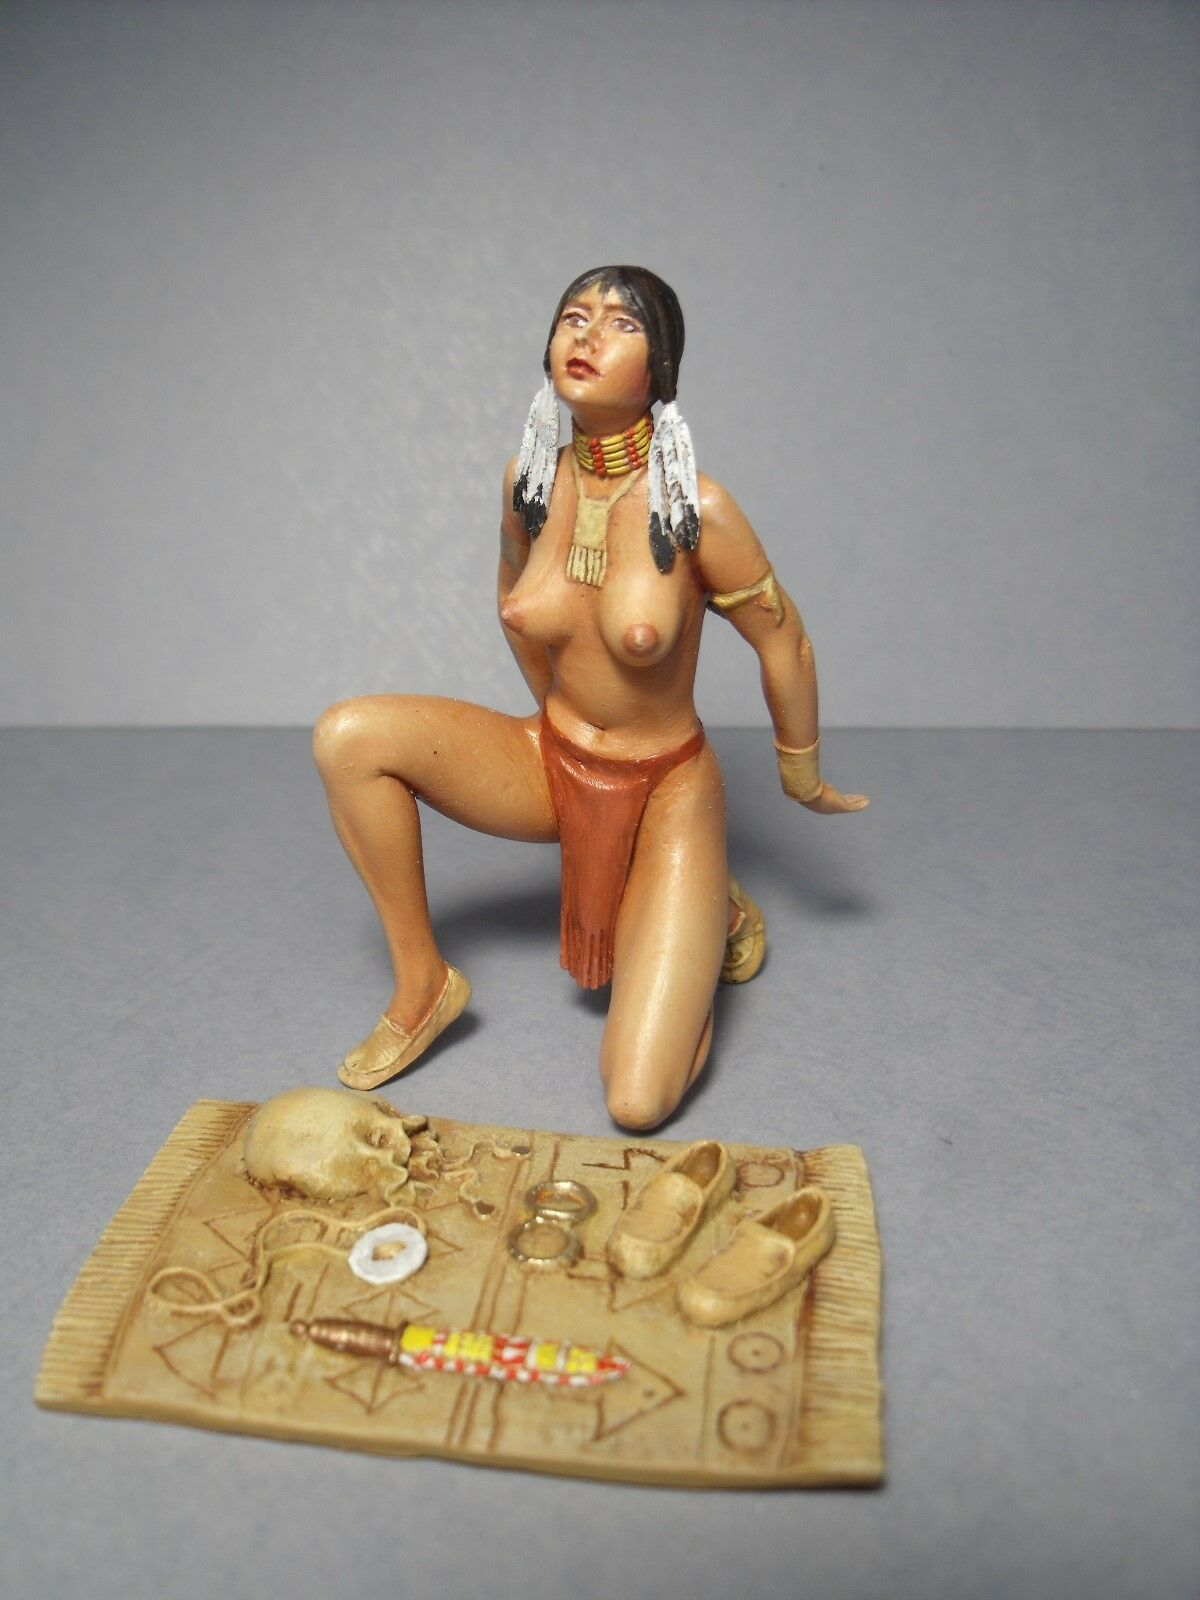 AKUTI  1 18  PAINTED  GIRL  FIGURE  BY  VROOM   FOR  AUTOART  MINICHAMPS